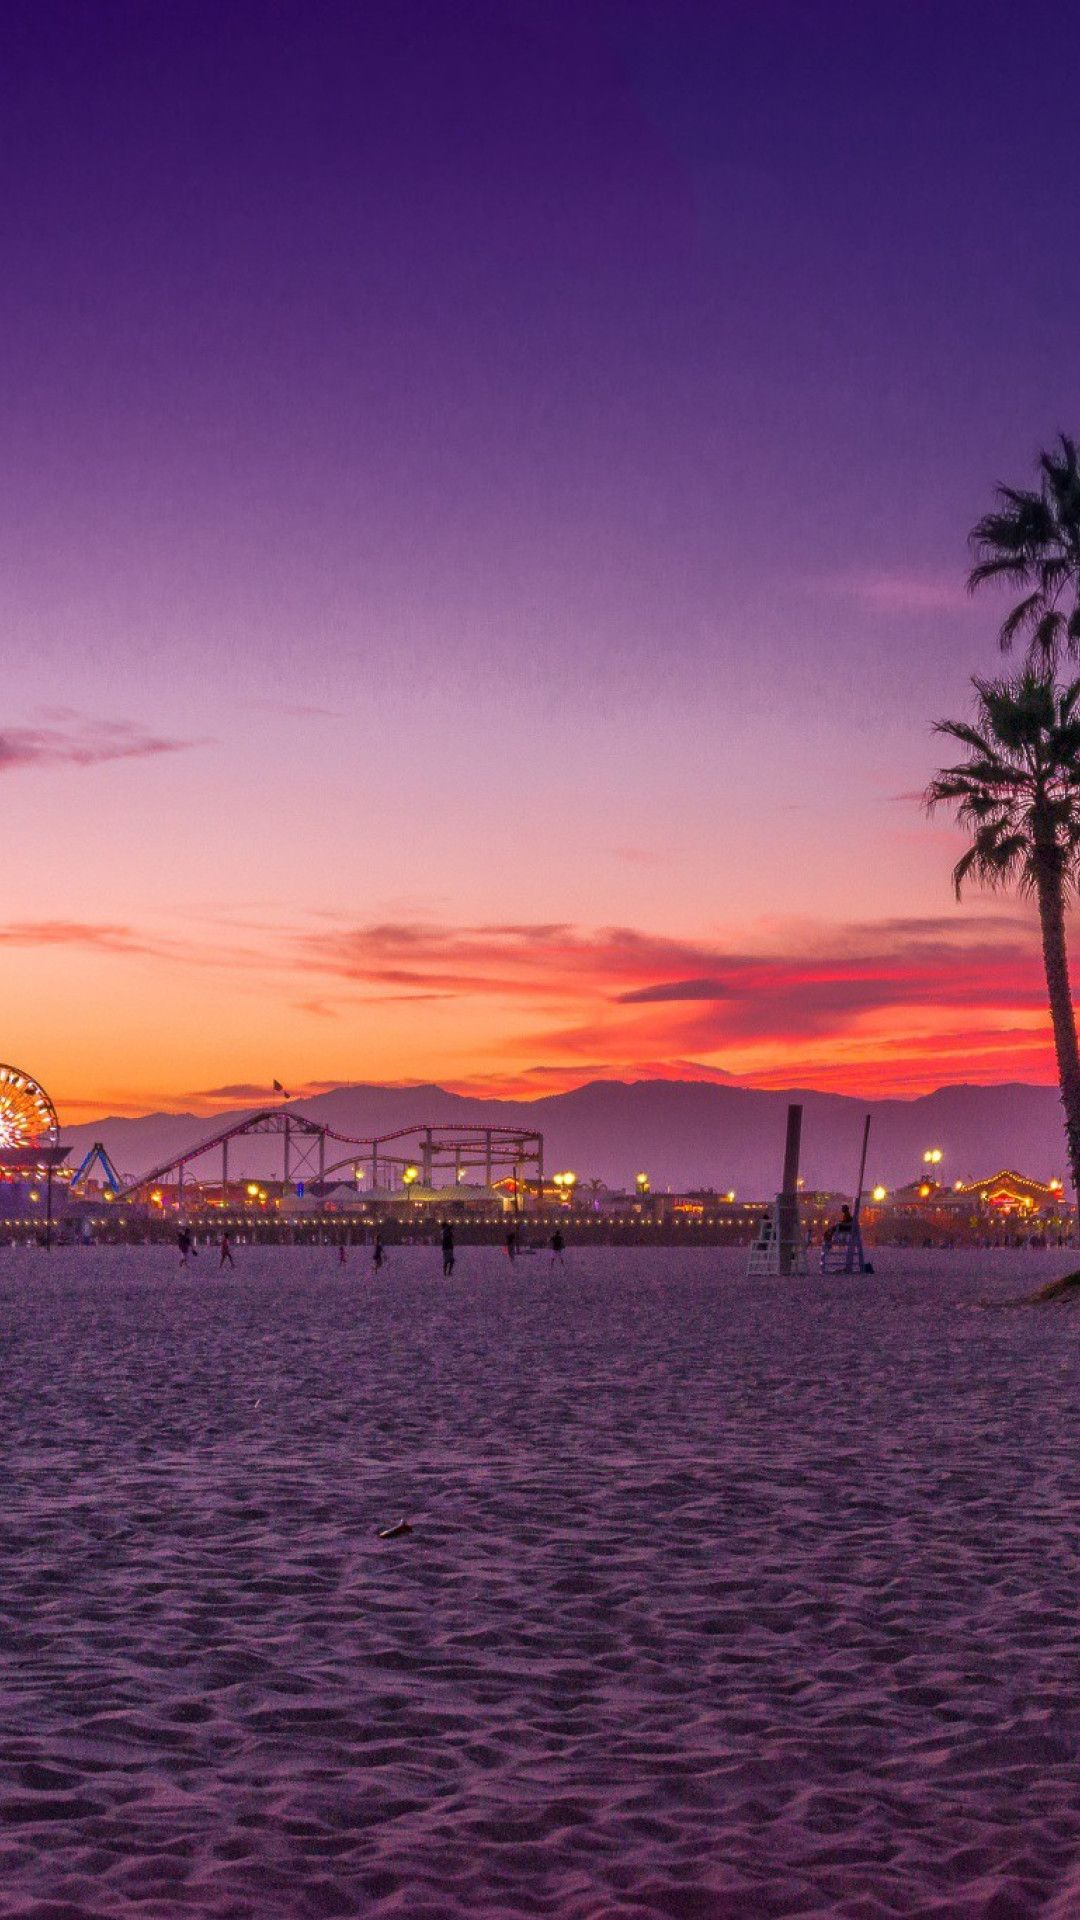 40 Venice Beach Los Angeles Wallpapers   Download at WallpaperBro 1080x1920